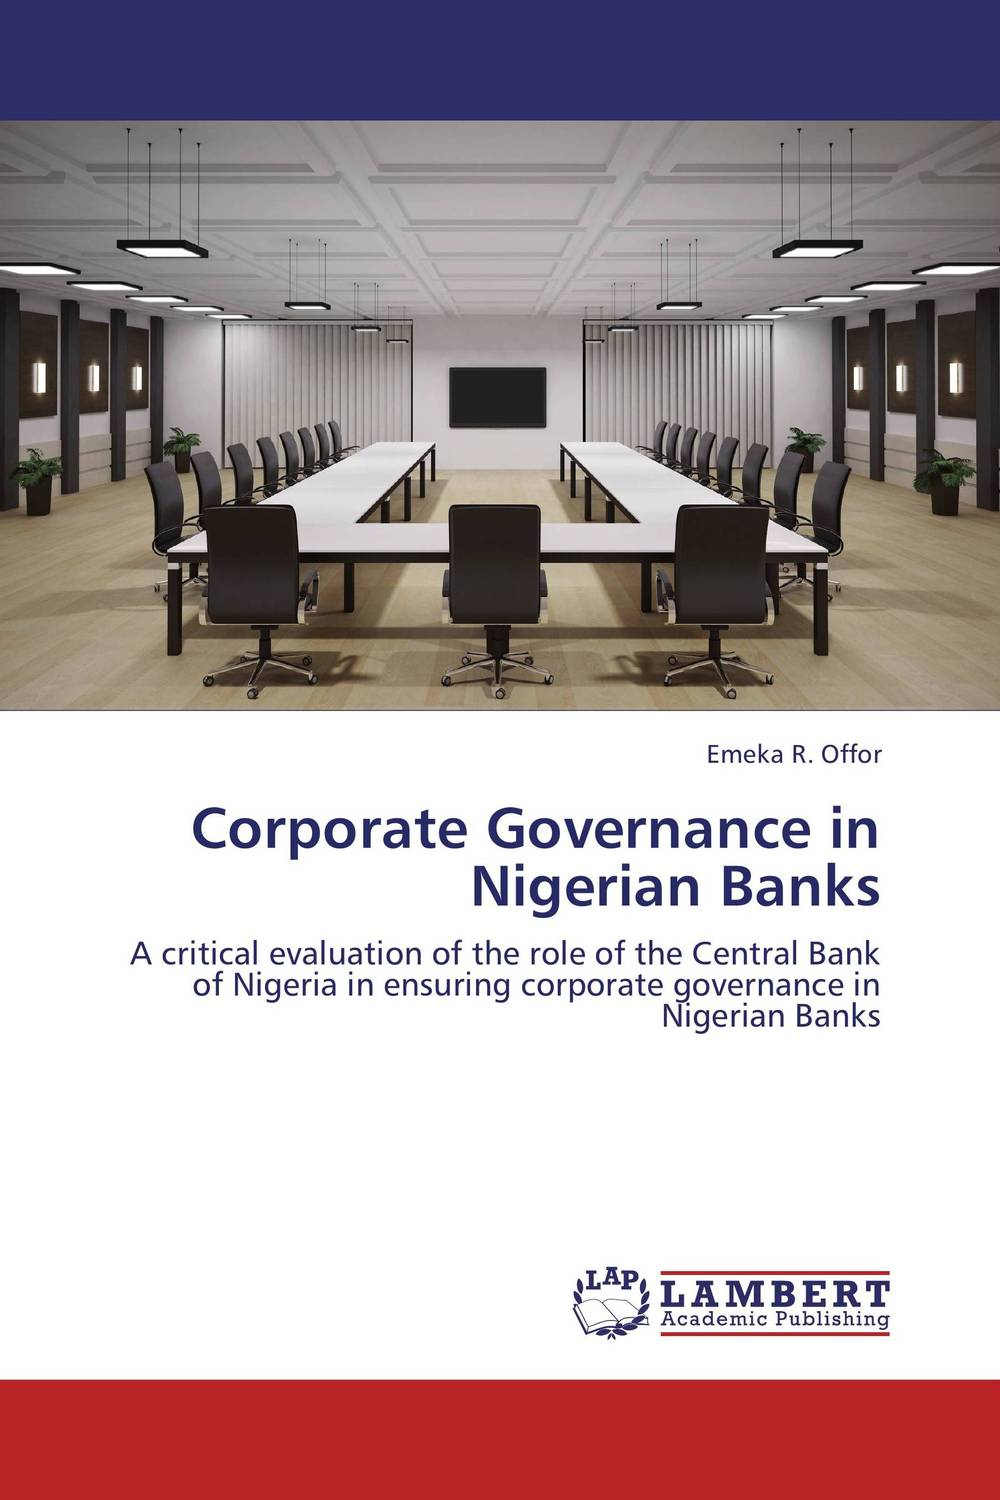 Corporate Governance in Nigerian Banks